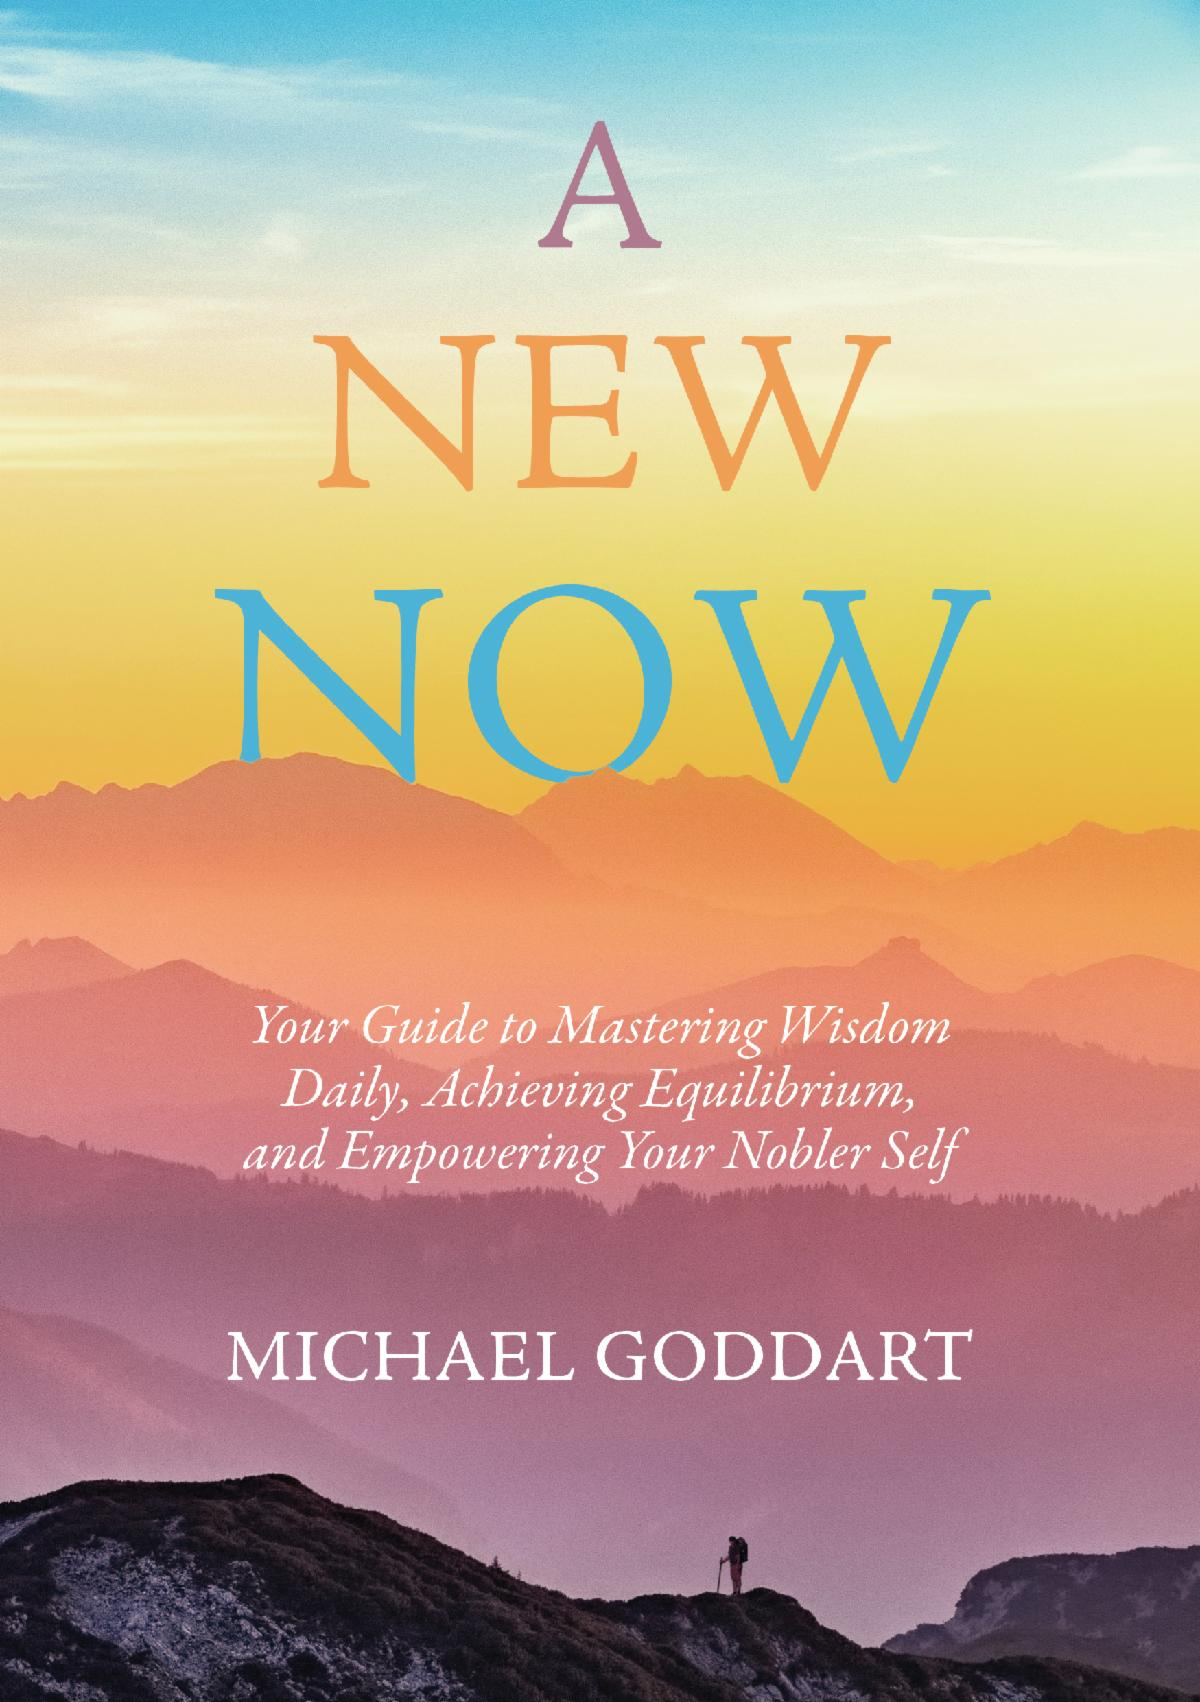 New Book Release 2021 by Michael Goddart'sA NEW NOW: Your Guide to Mastering Wisdom Daily